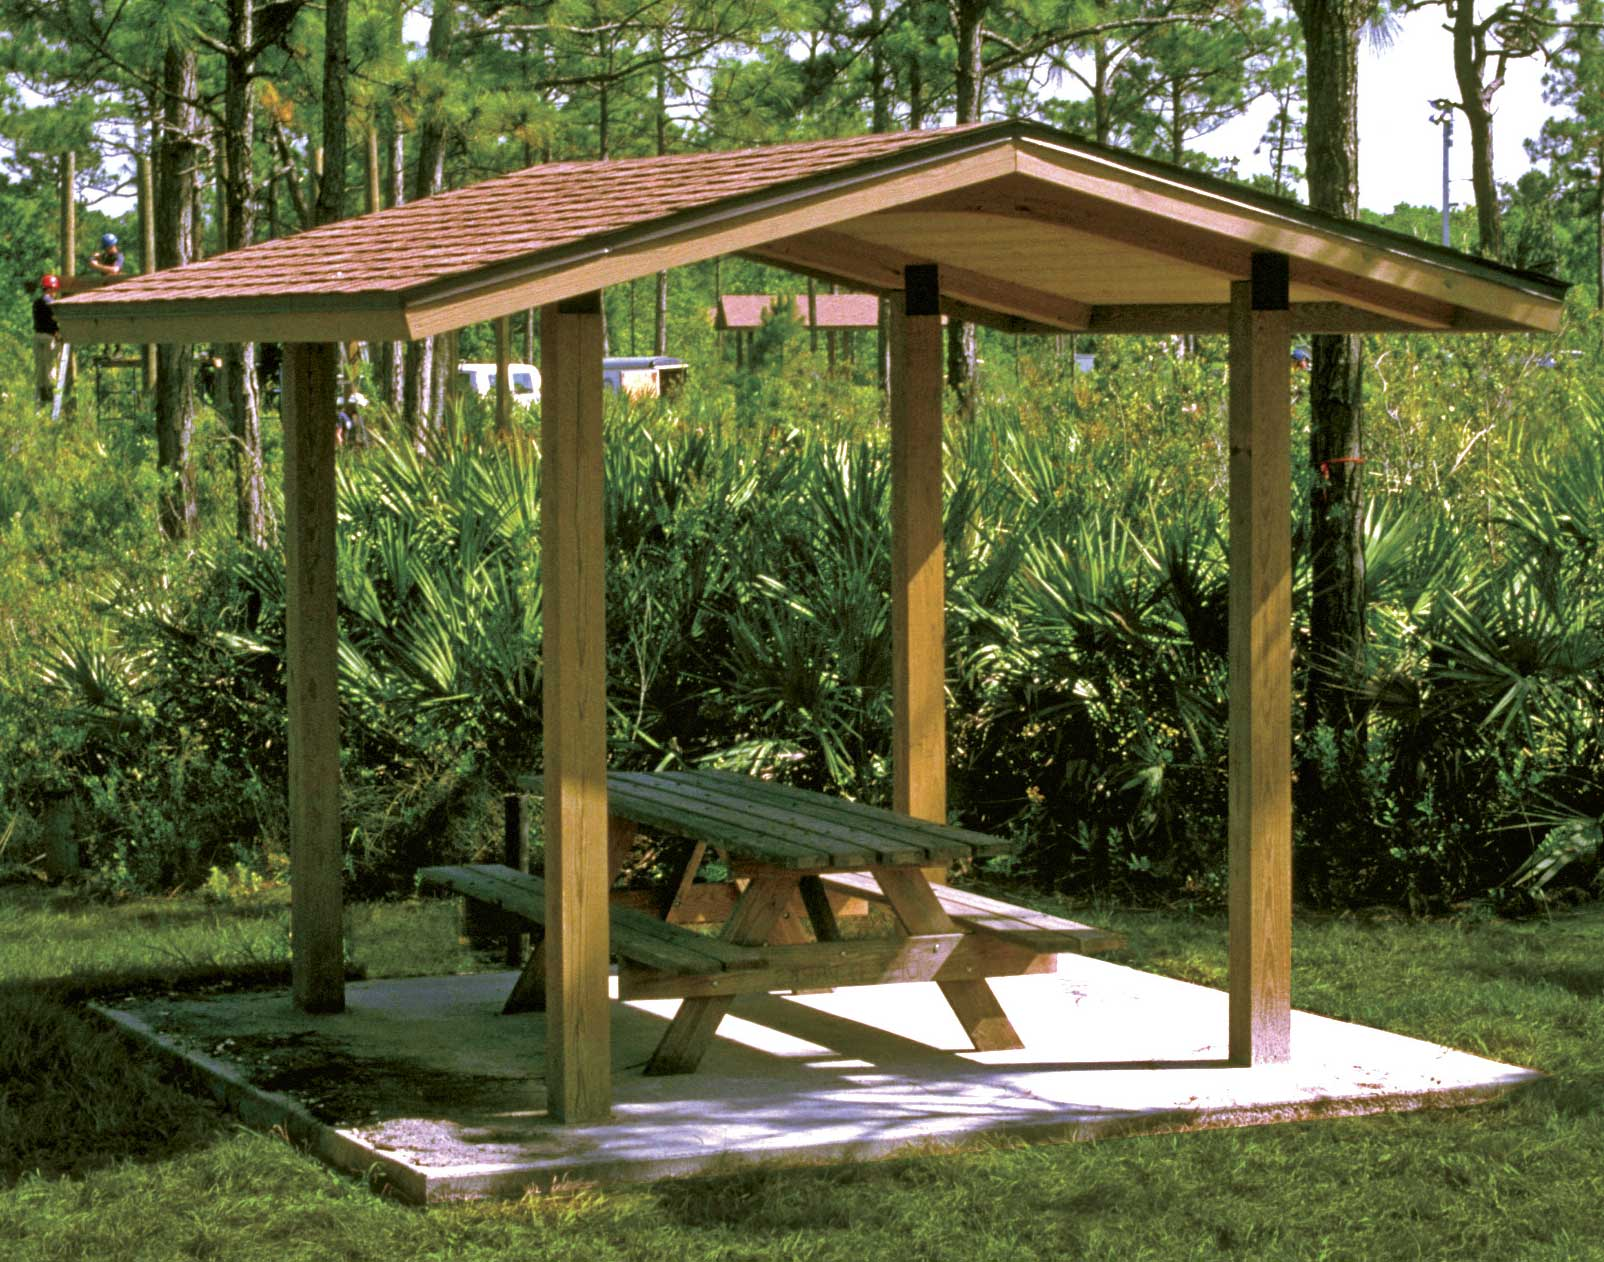 Wood single roof savannah rectangle pavilions for Garden gazebo designs plans